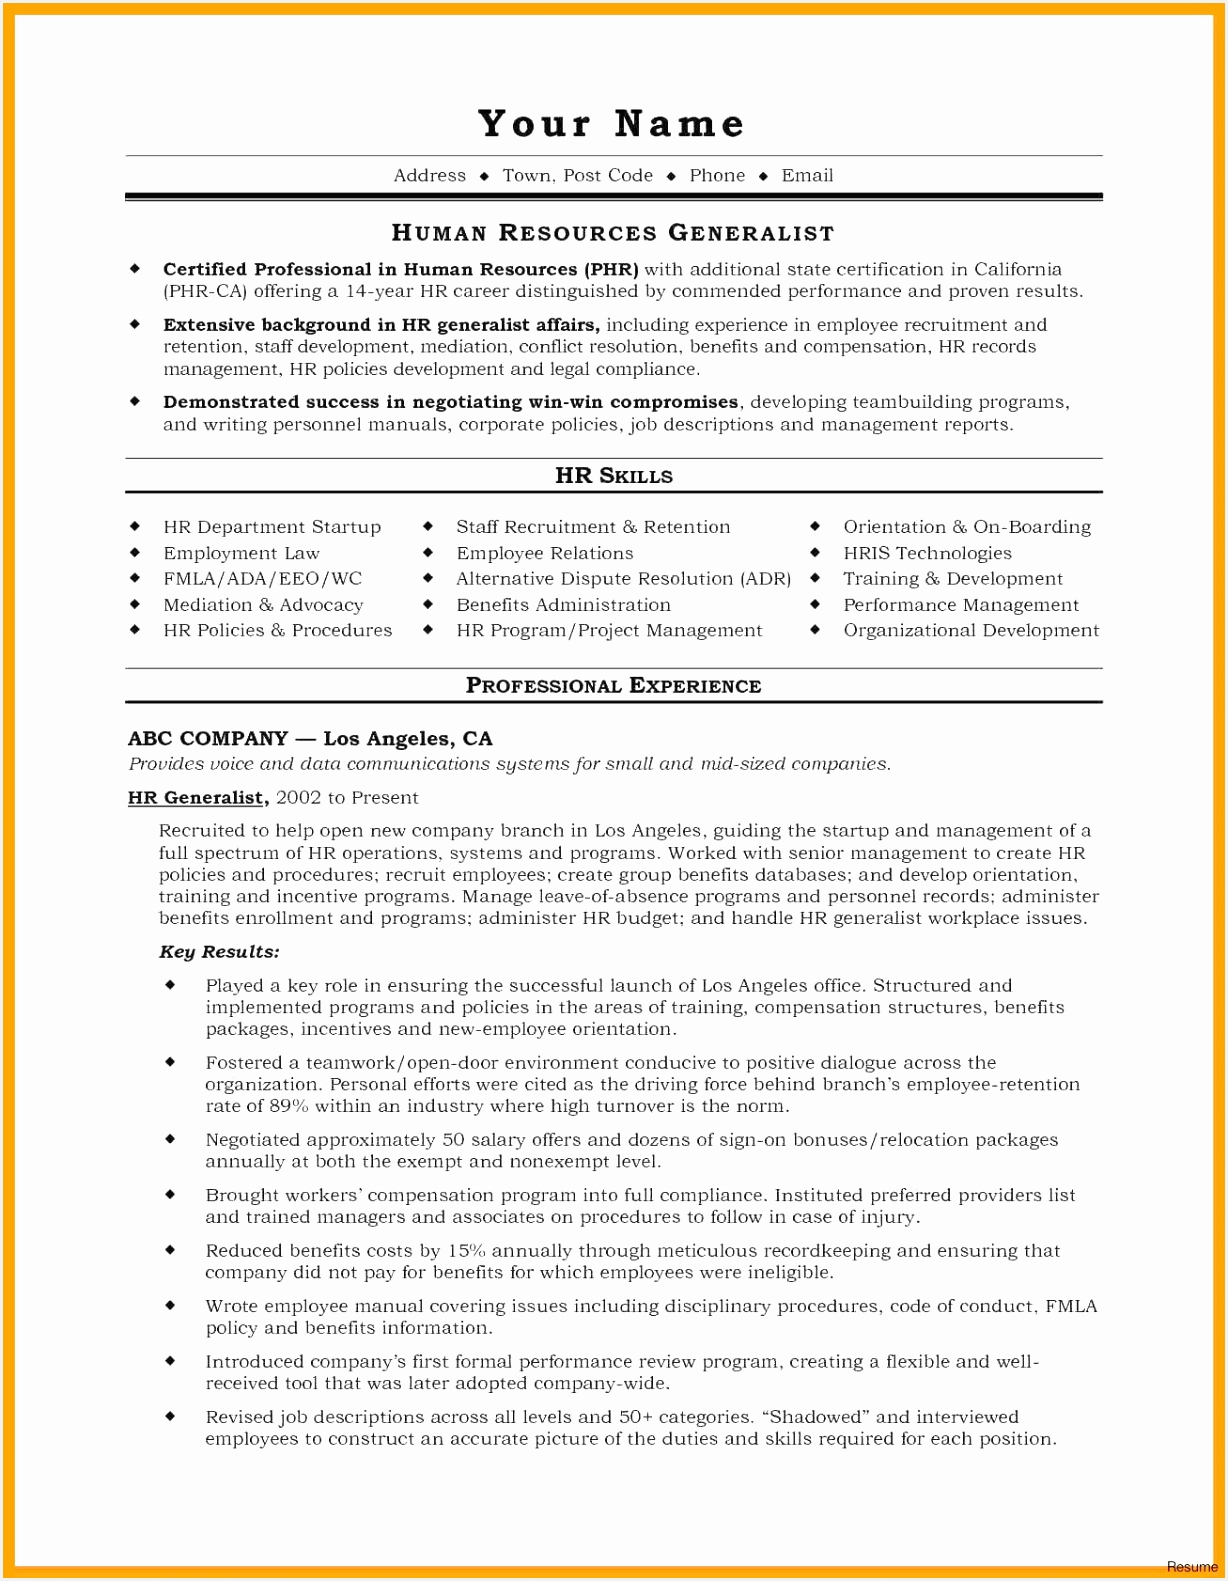 Resumes Samples for Jobs Z8rzj Luxury Apartment Manager Resume Sample – Salumguilher15811228